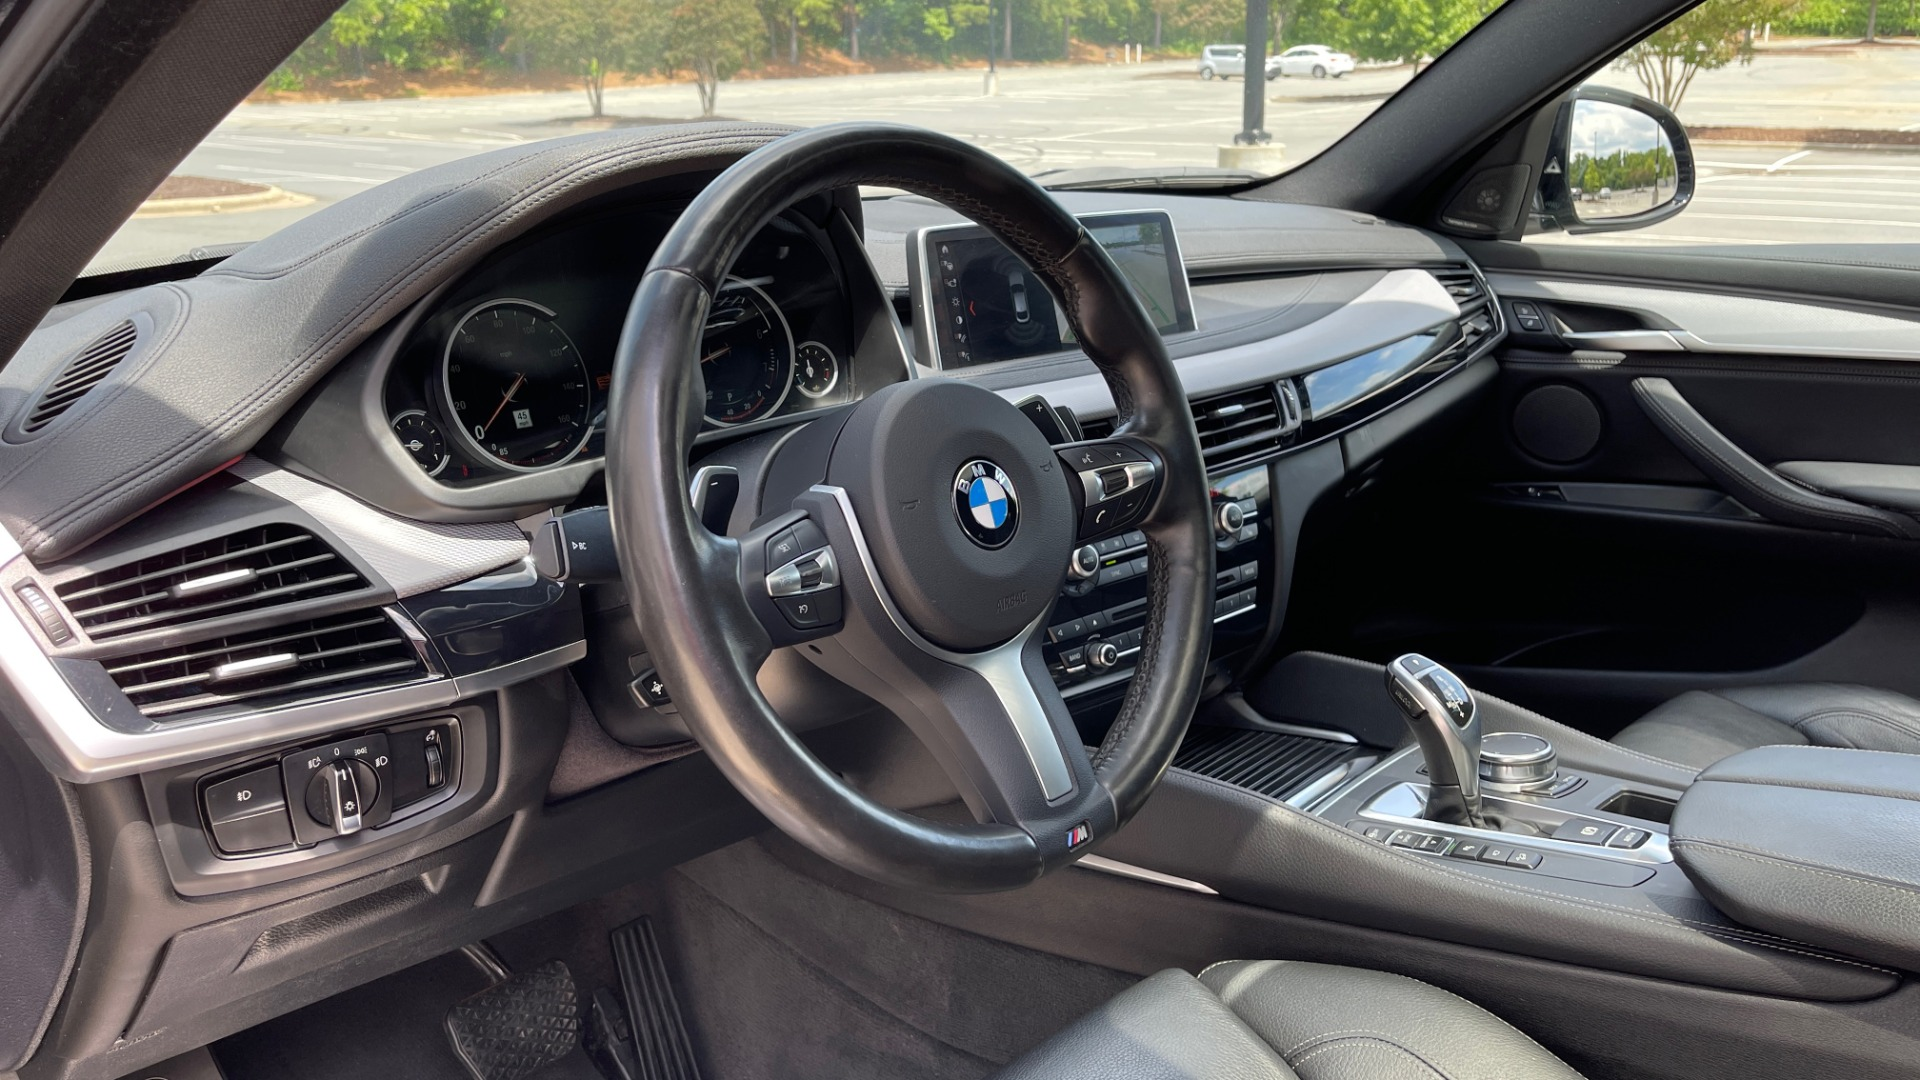 Used 2018 BMW X6 XDRIVE35I M-SPORT / DRVR ASST / PRK ASST / H/K SND / APPLE / WIRELESS CHARG for sale $51,995 at Formula Imports in Charlotte NC 28227 38